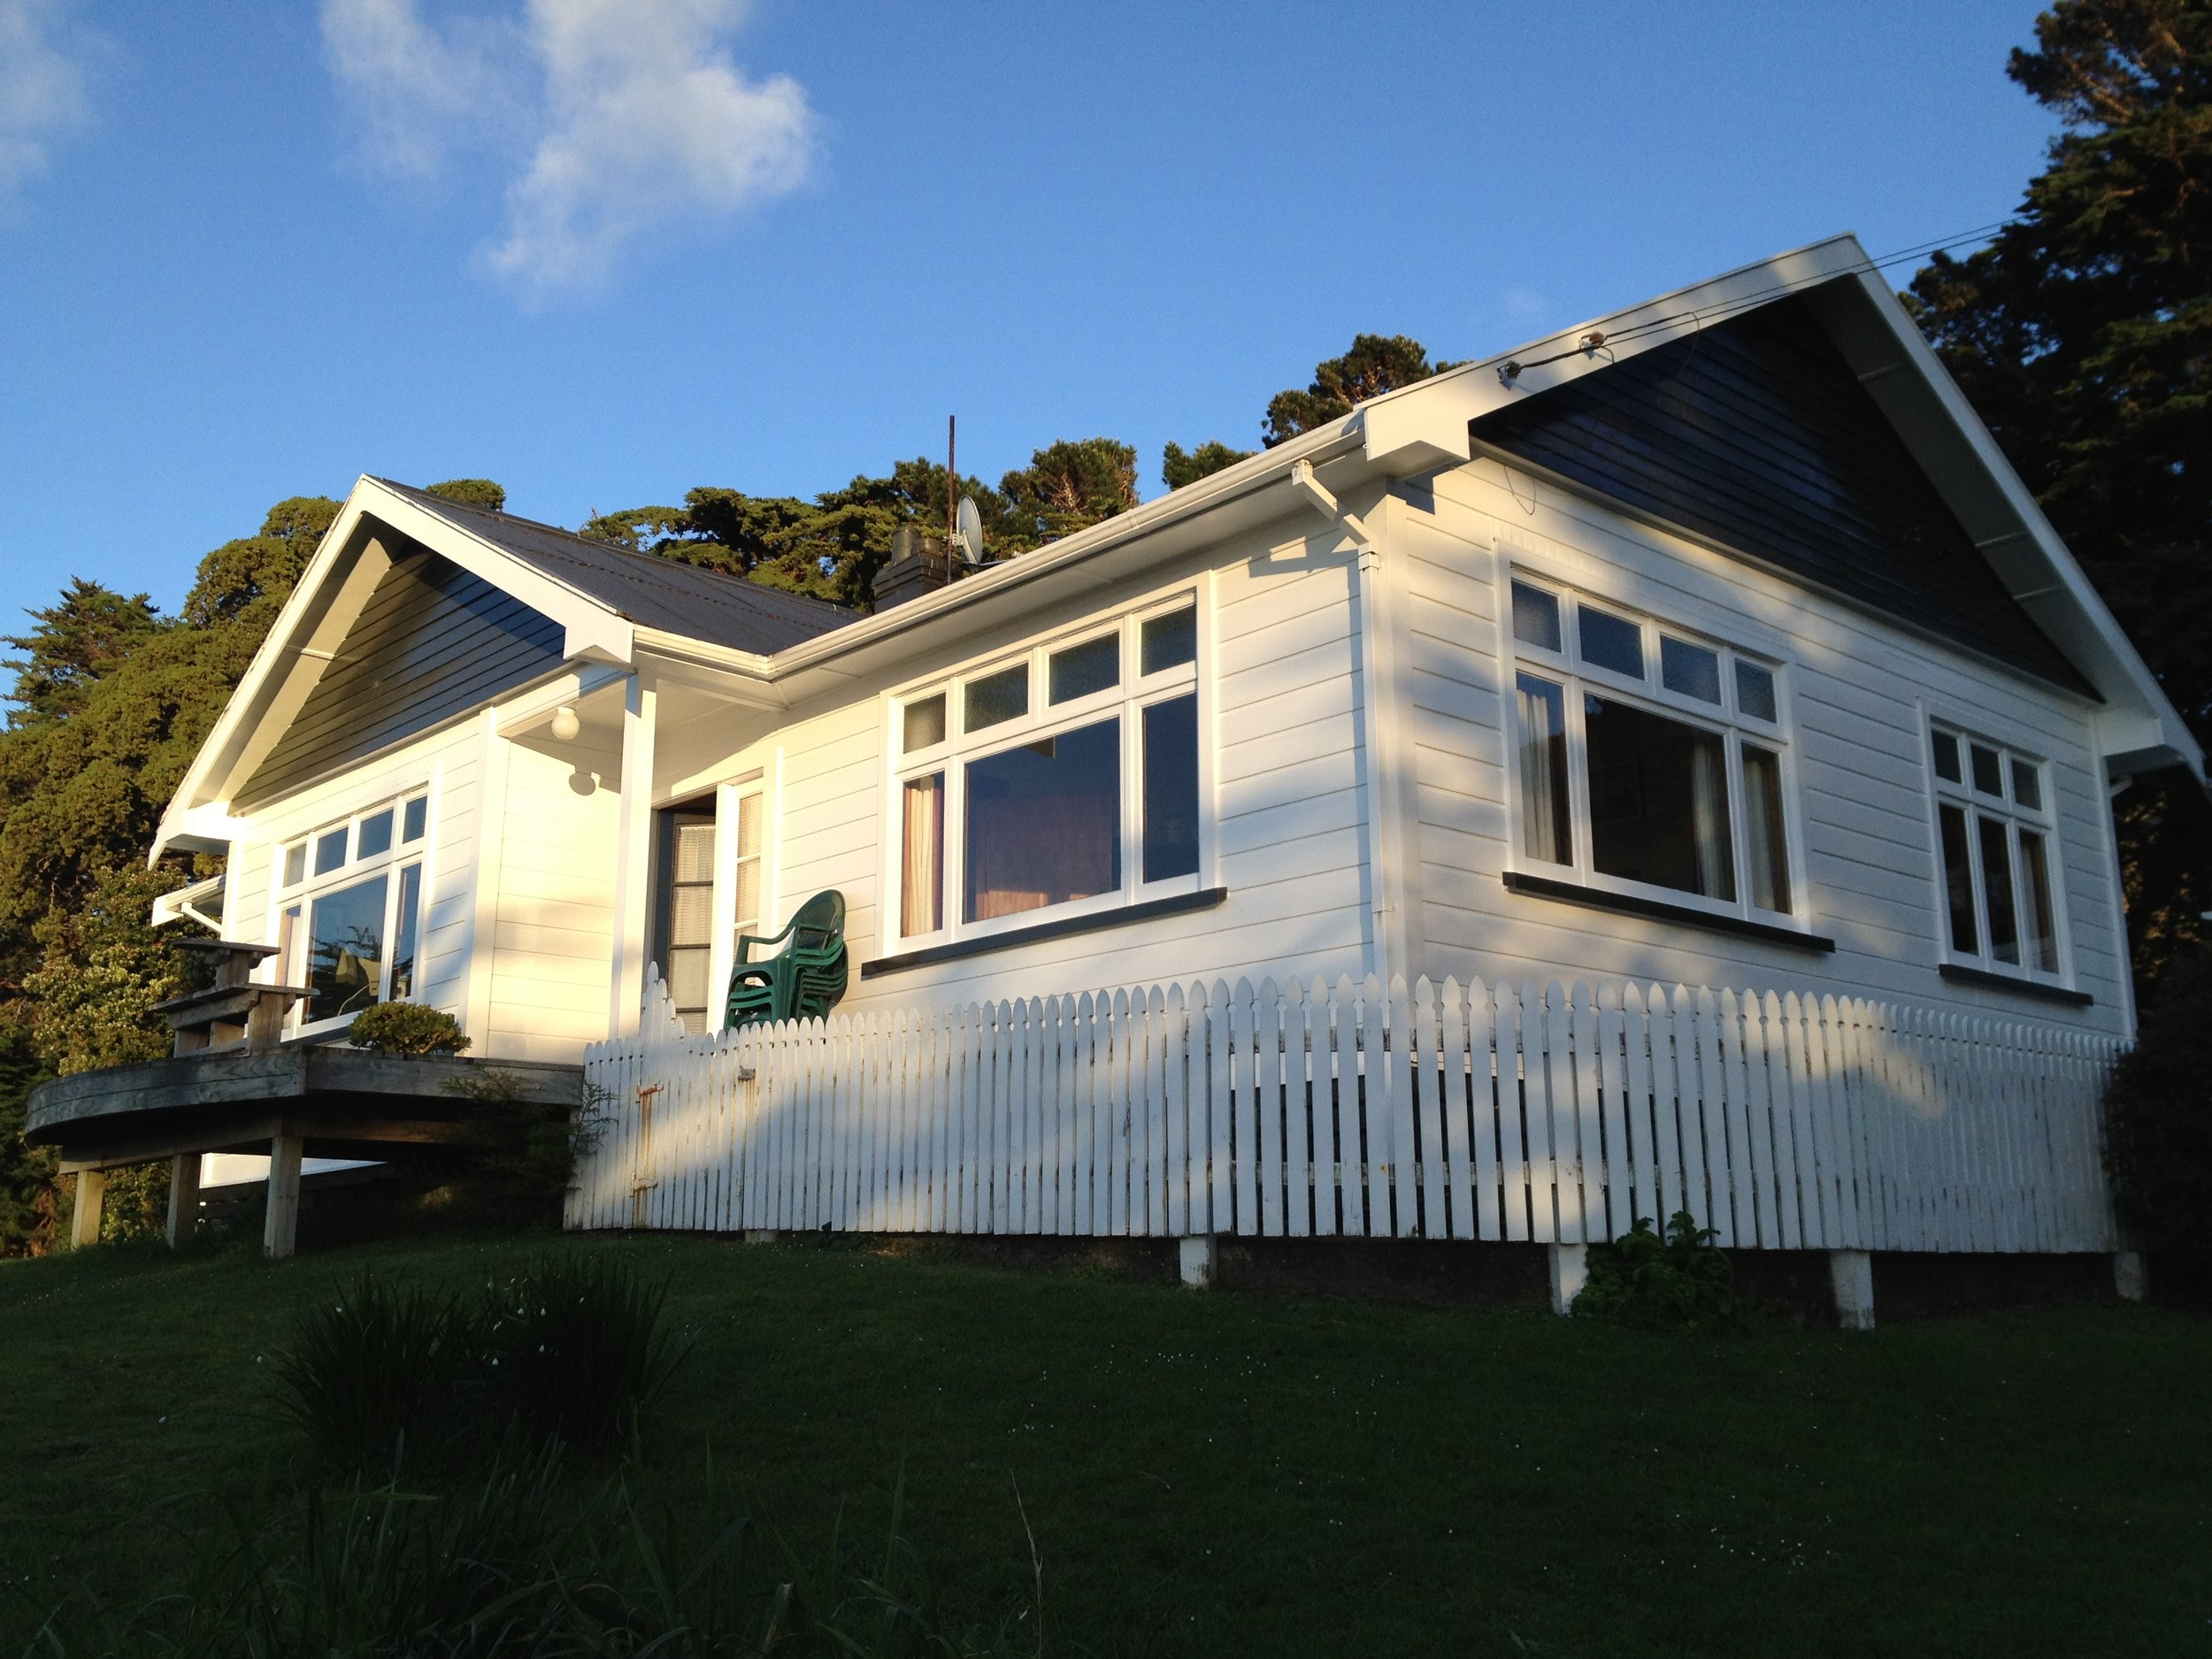 The original Perano homestead looking over Tory Channel out to Cook Strait is now a holiday home for rent (image by Jacqui Gibson).